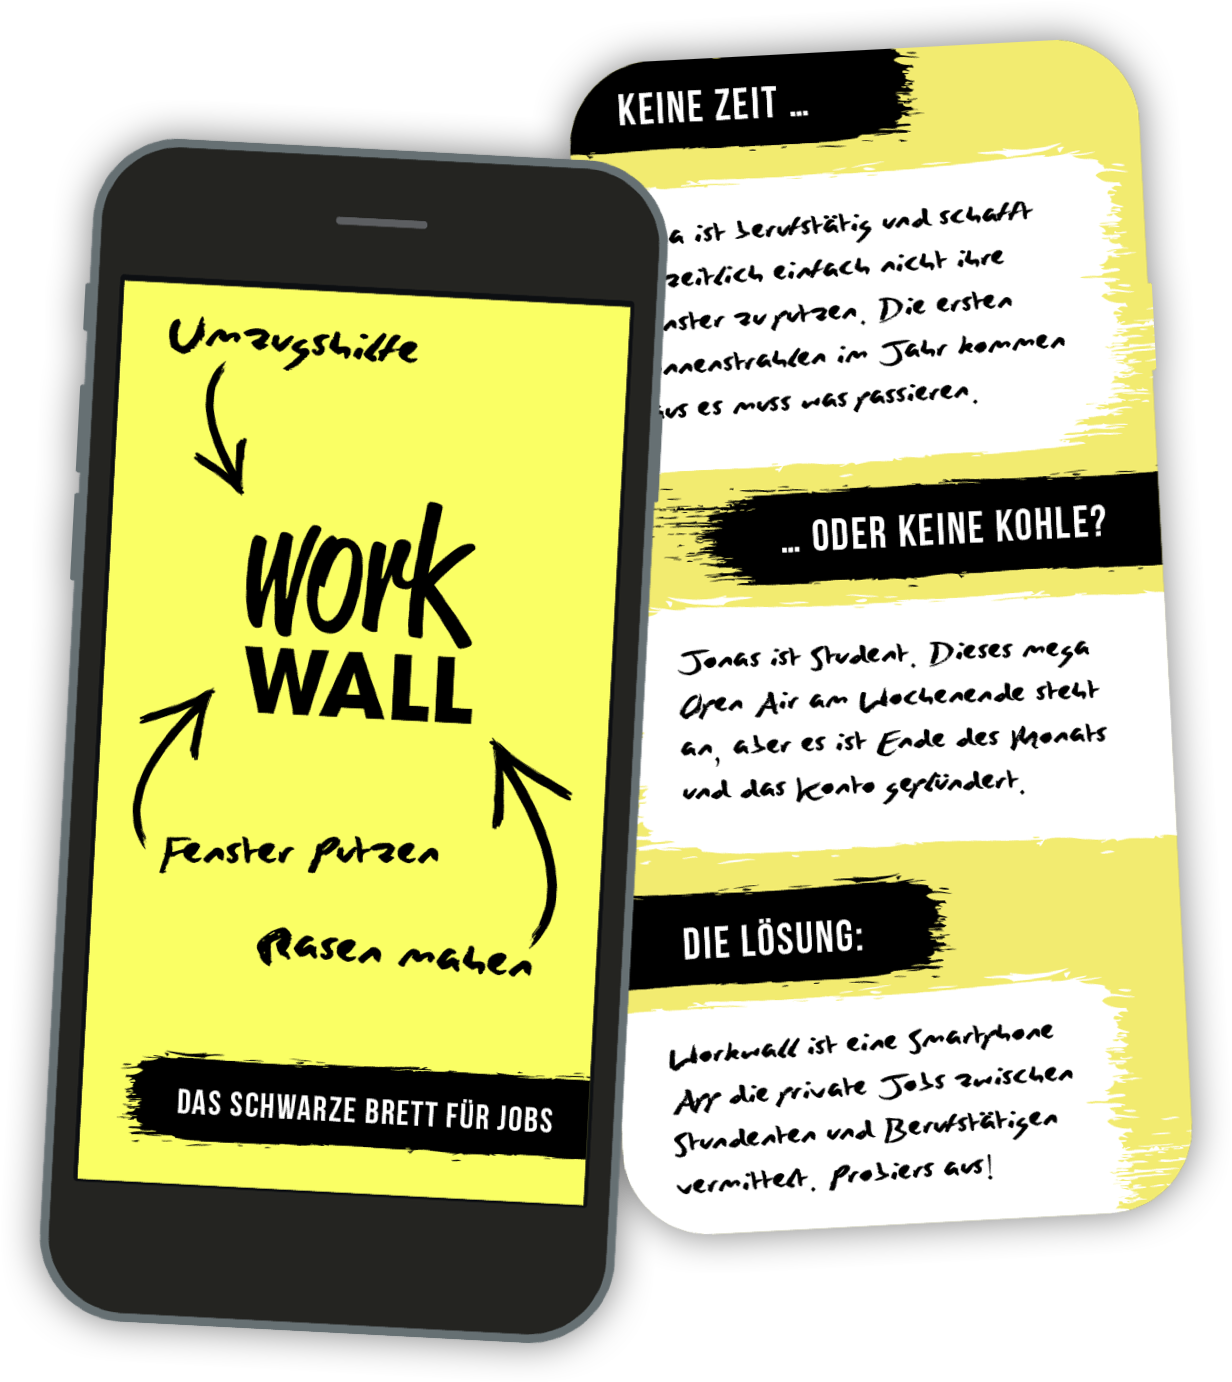 workwall_flyer_1